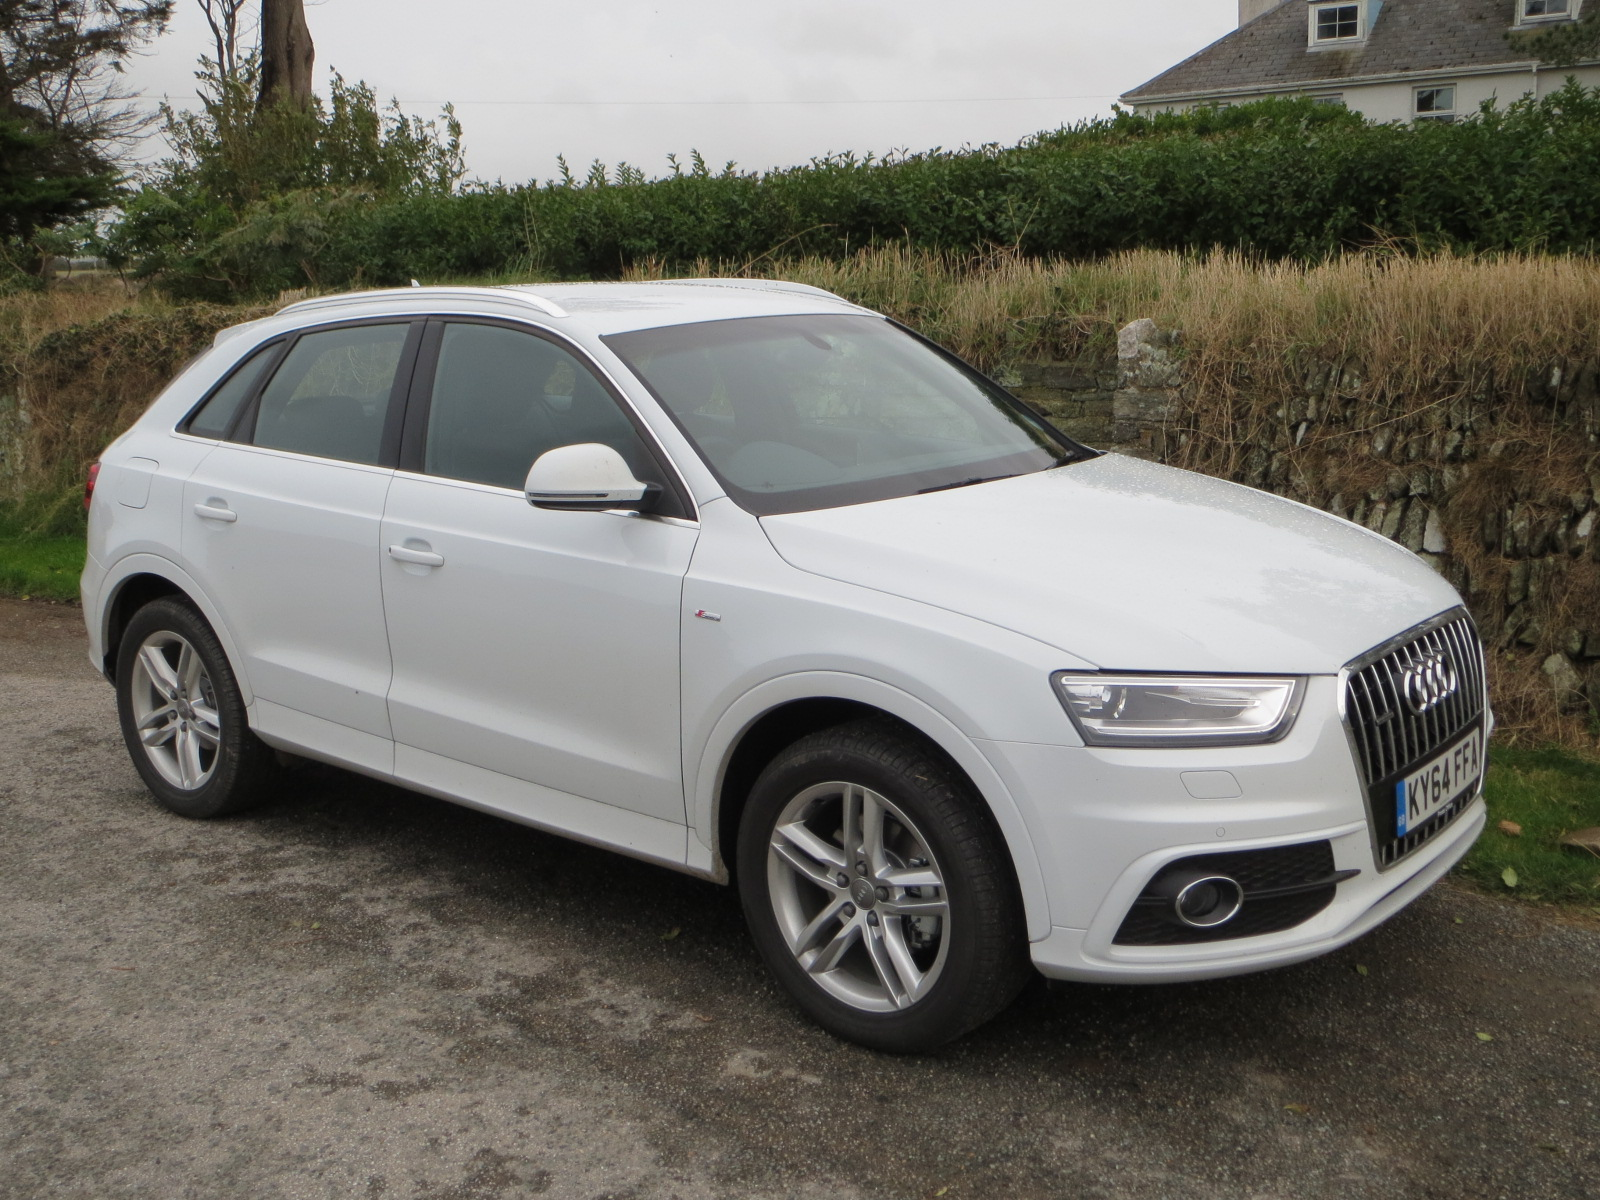 audi q3 tdi quattro s line 140 ps s tronic road test. Black Bedroom Furniture Sets. Home Design Ideas